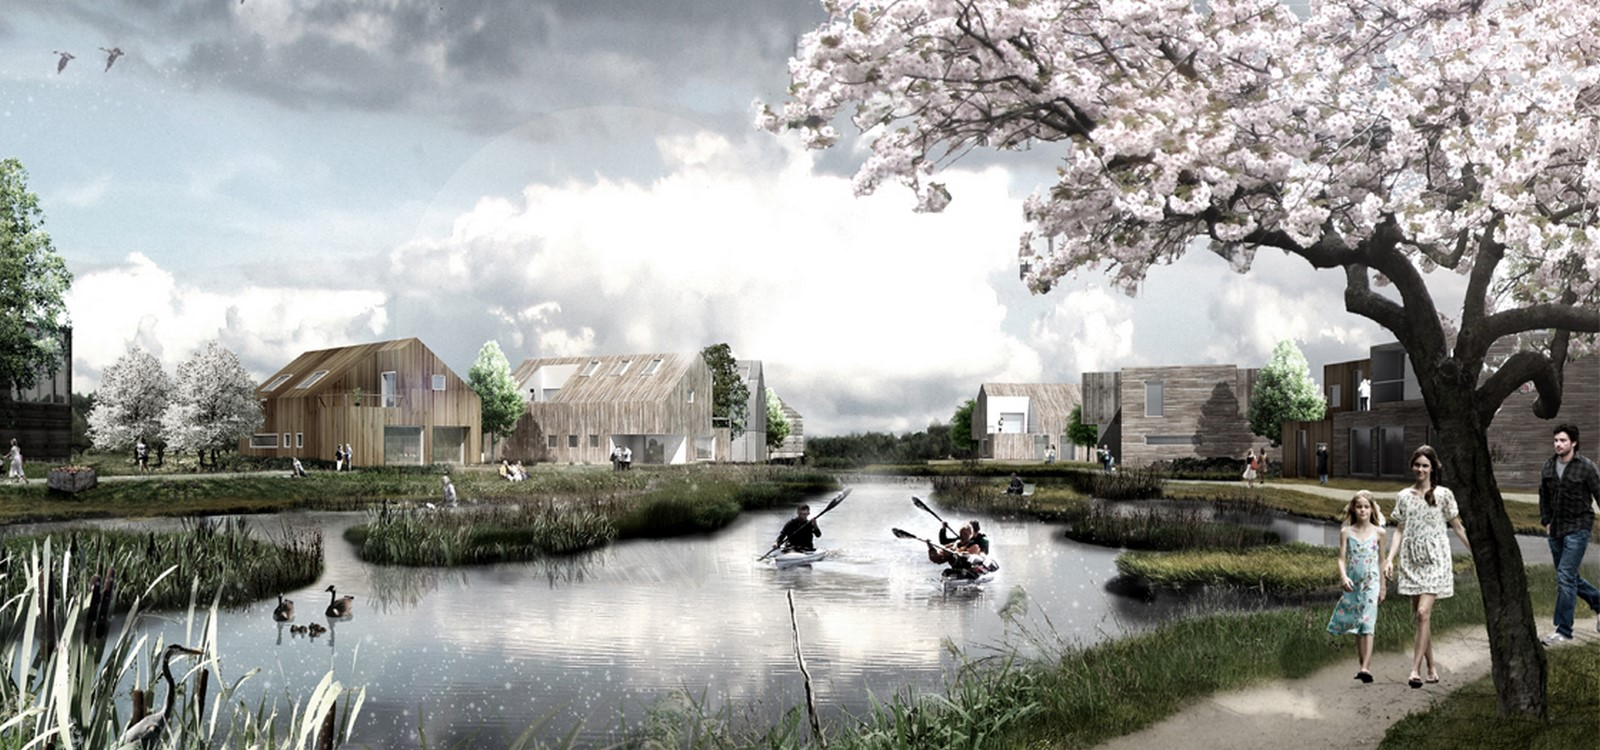 The Delta District in the future city of Vinge - Sheet2